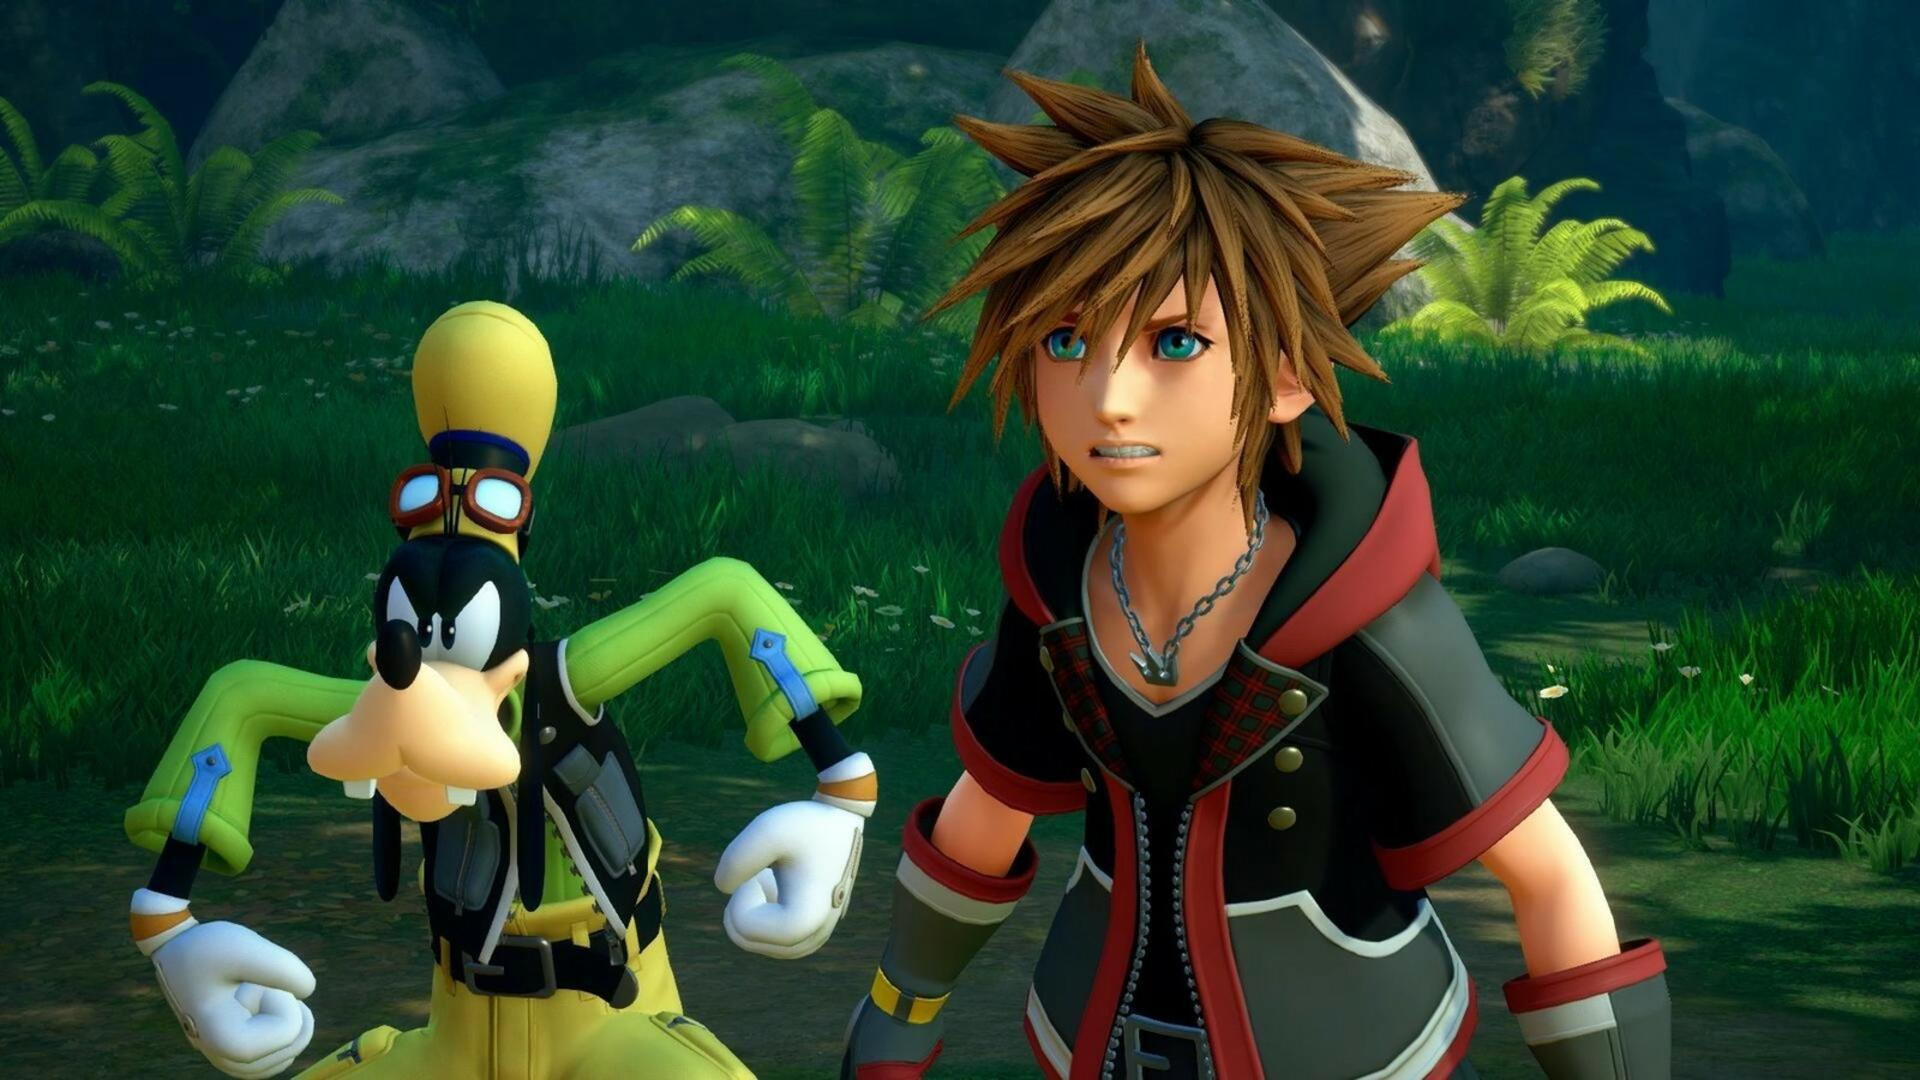 Kingdom Hearts 3 Lucky Emblem Locations - All KH3's Lucky Emblems to Unlock the Secret Ending in Kingdom Hearts 3